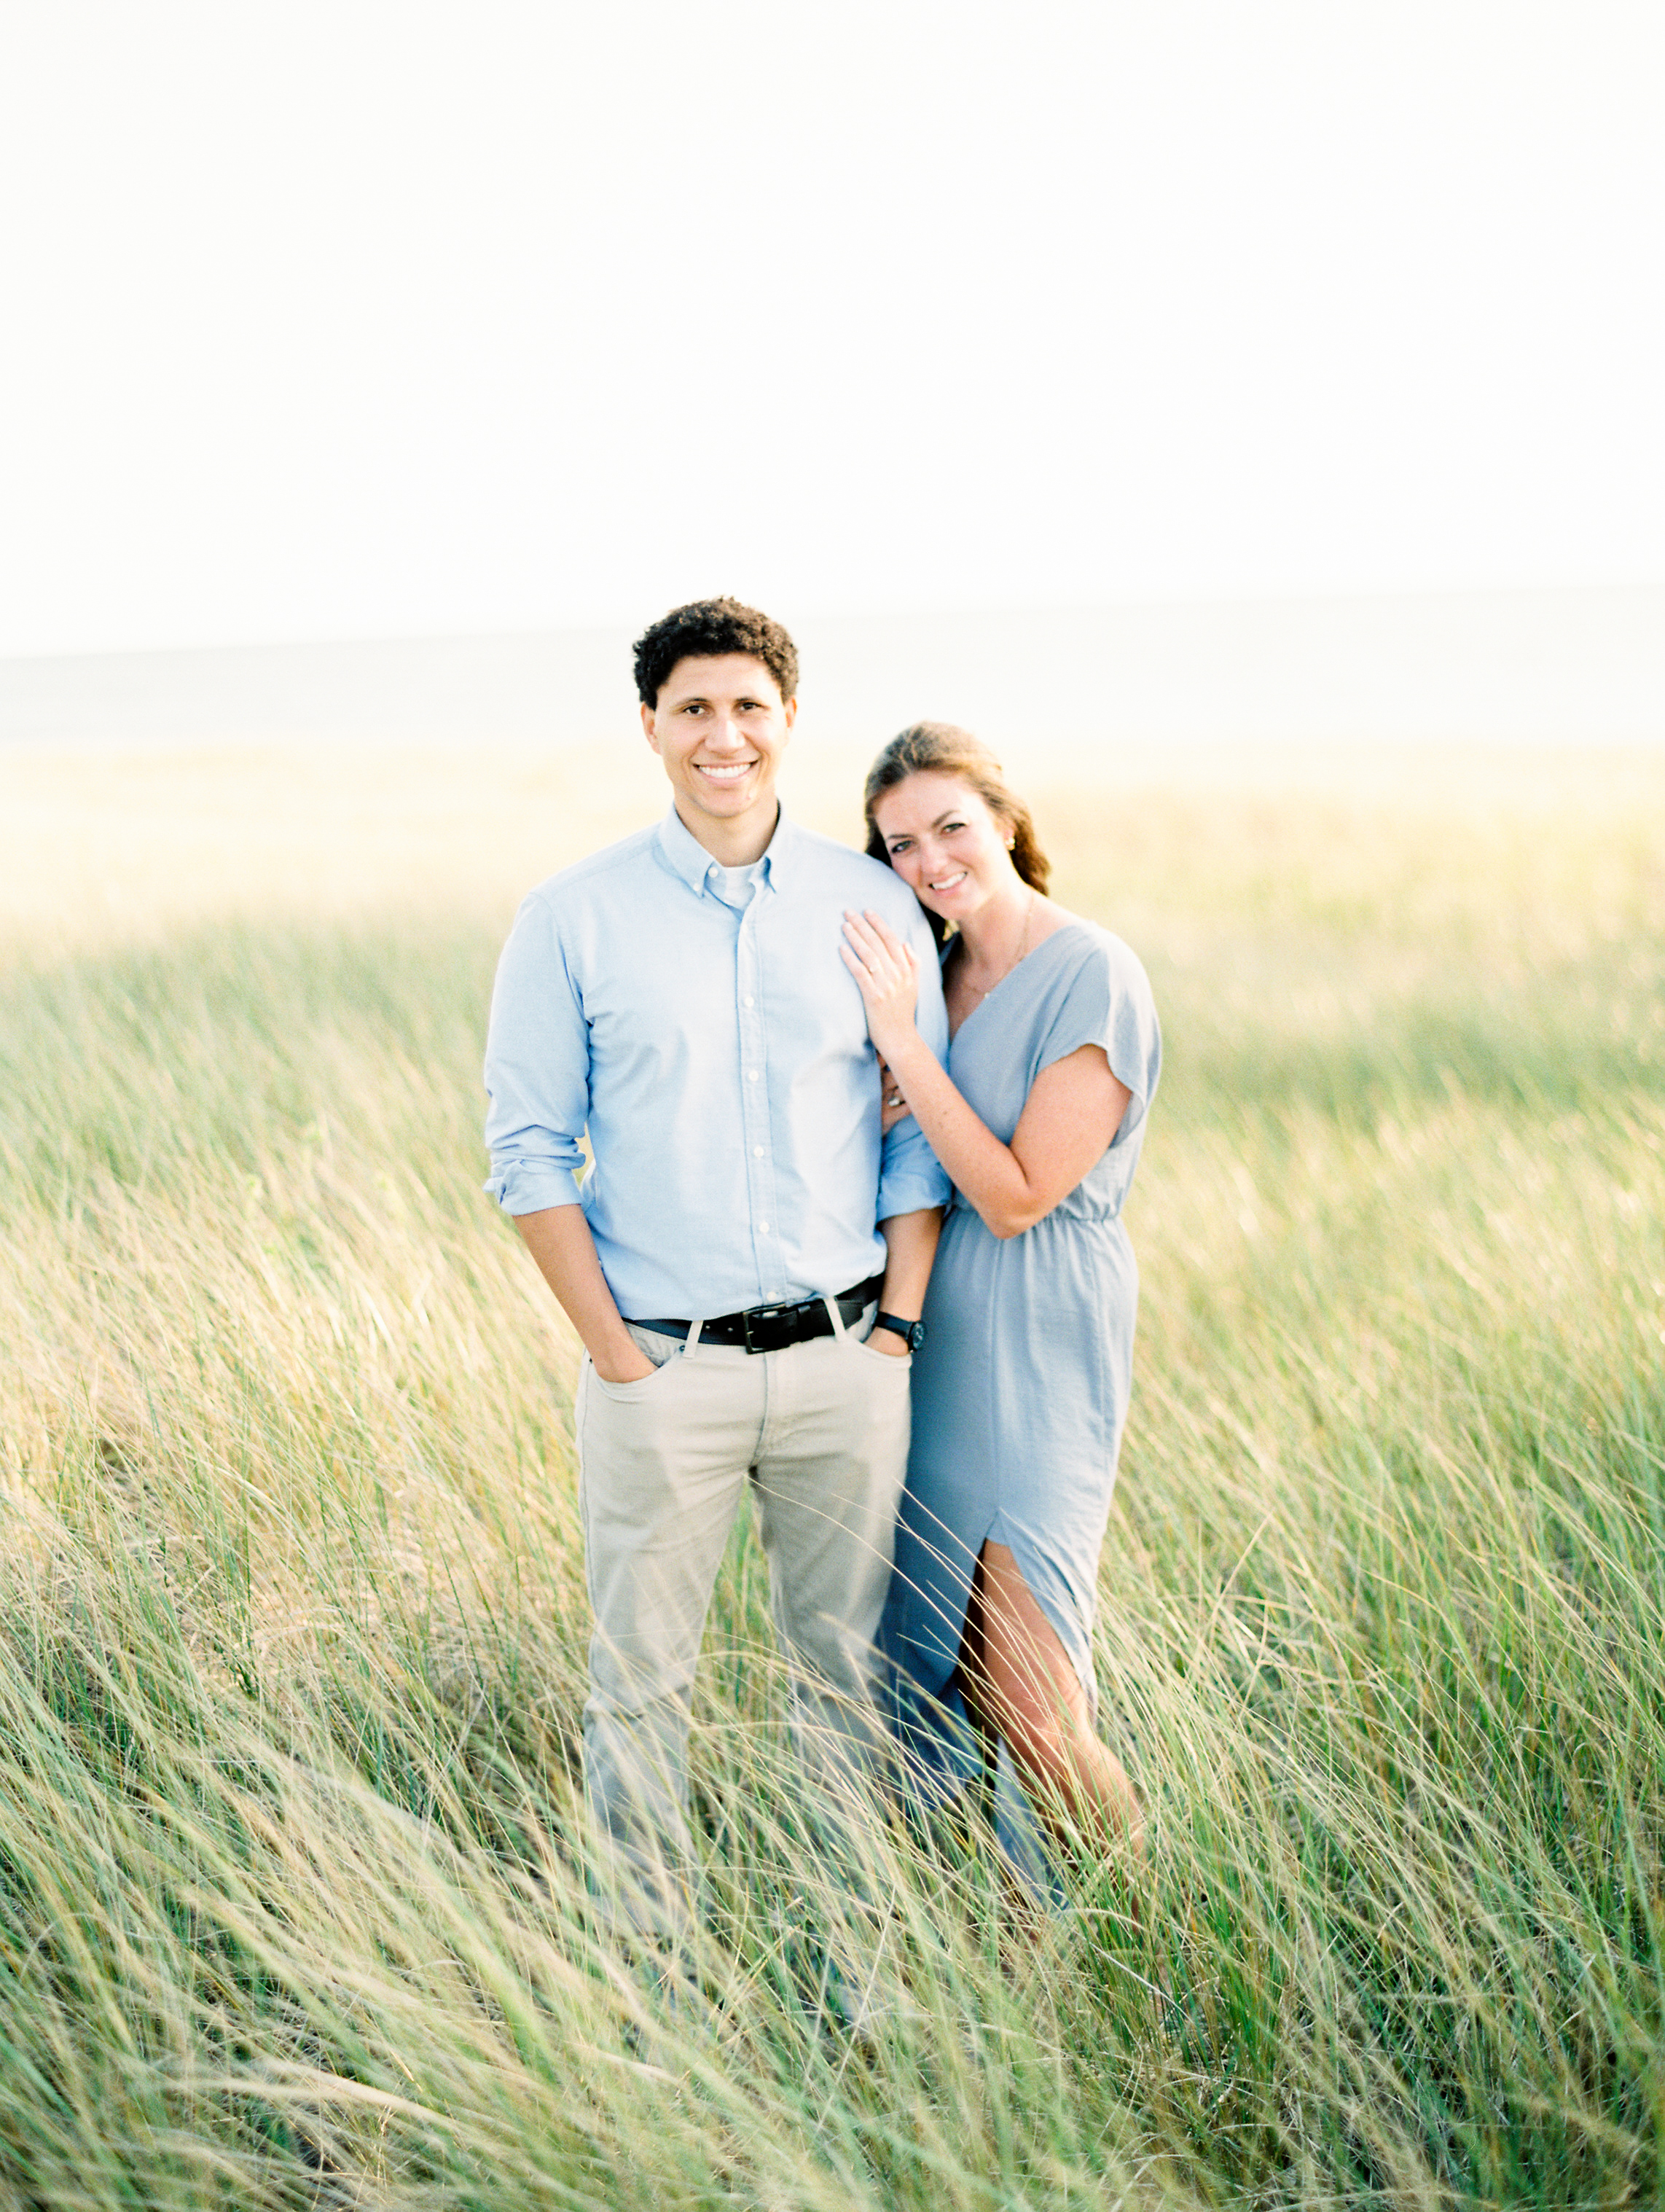 Lucie+Anthony+Engaged-76.jpg